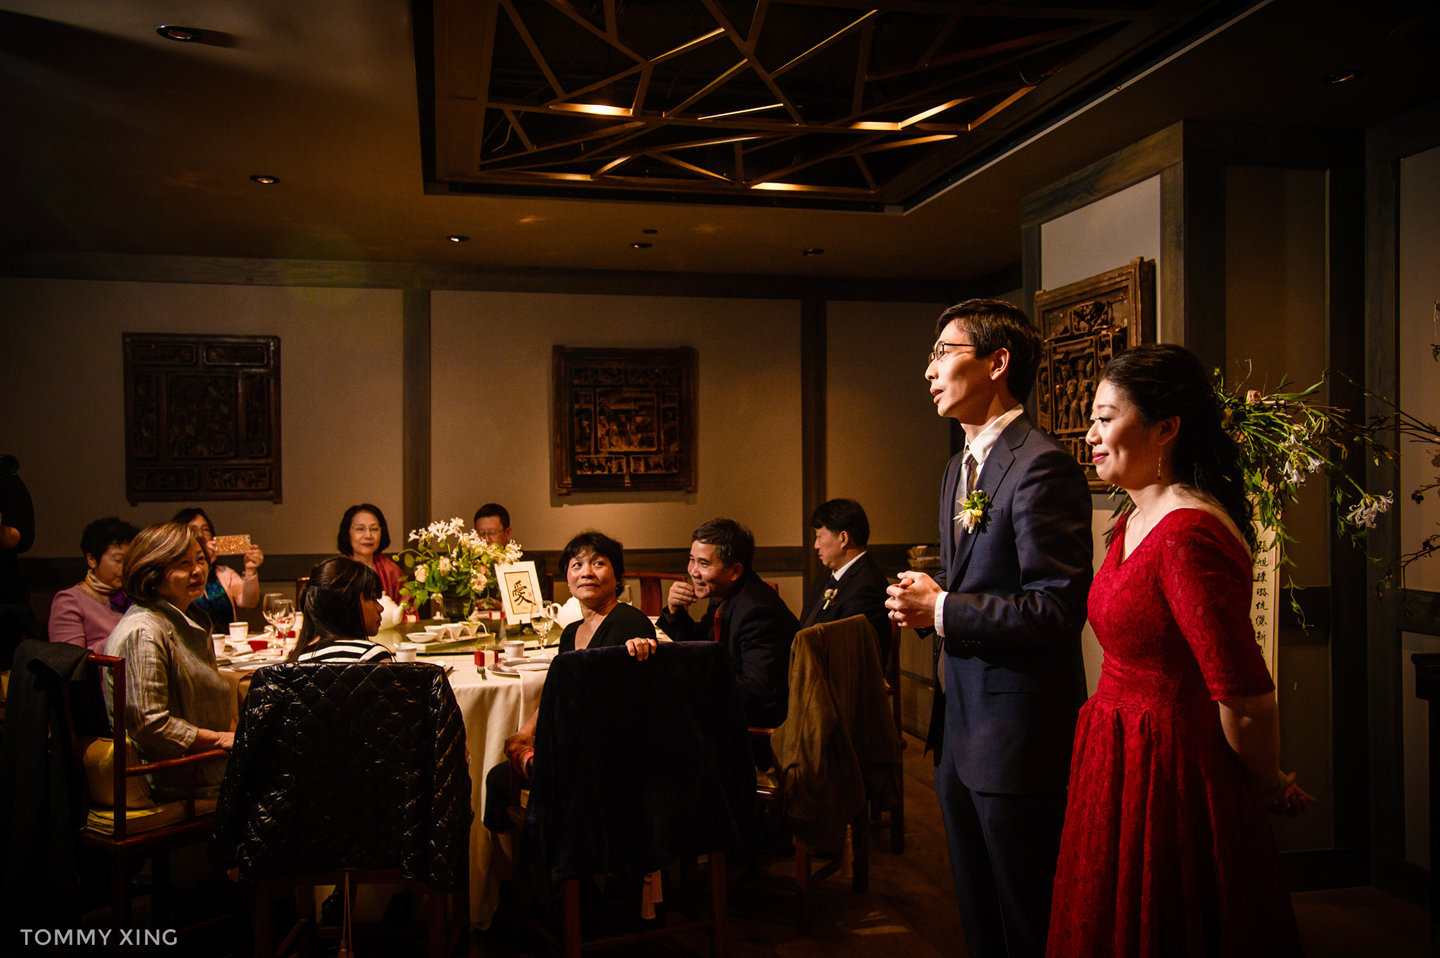 San Francisco Wedding Photography Valley Presbyterian Church WEDDING Tommy Xing Photography 洛杉矶旧金山婚礼婚纱照摄影师112.jpg